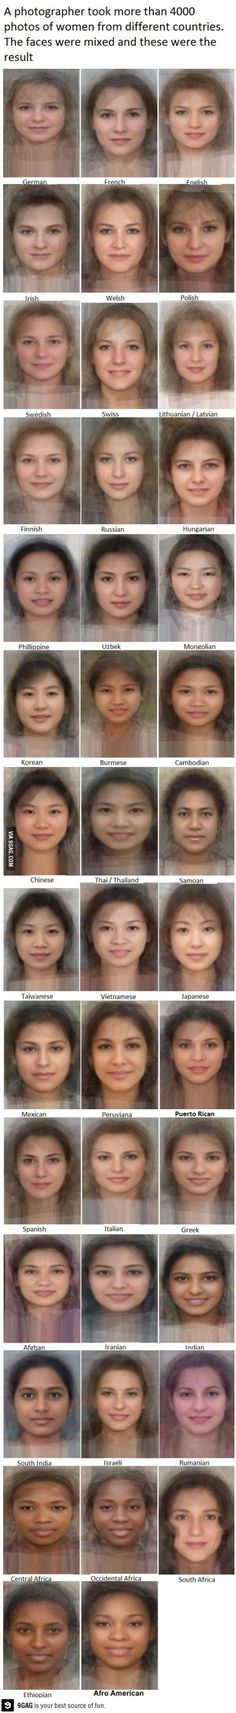 WOW. A photographer travels the world an takes over 4000 pictures of different women from different countries and ethnicities. He combines each batch together to create 'the average face'